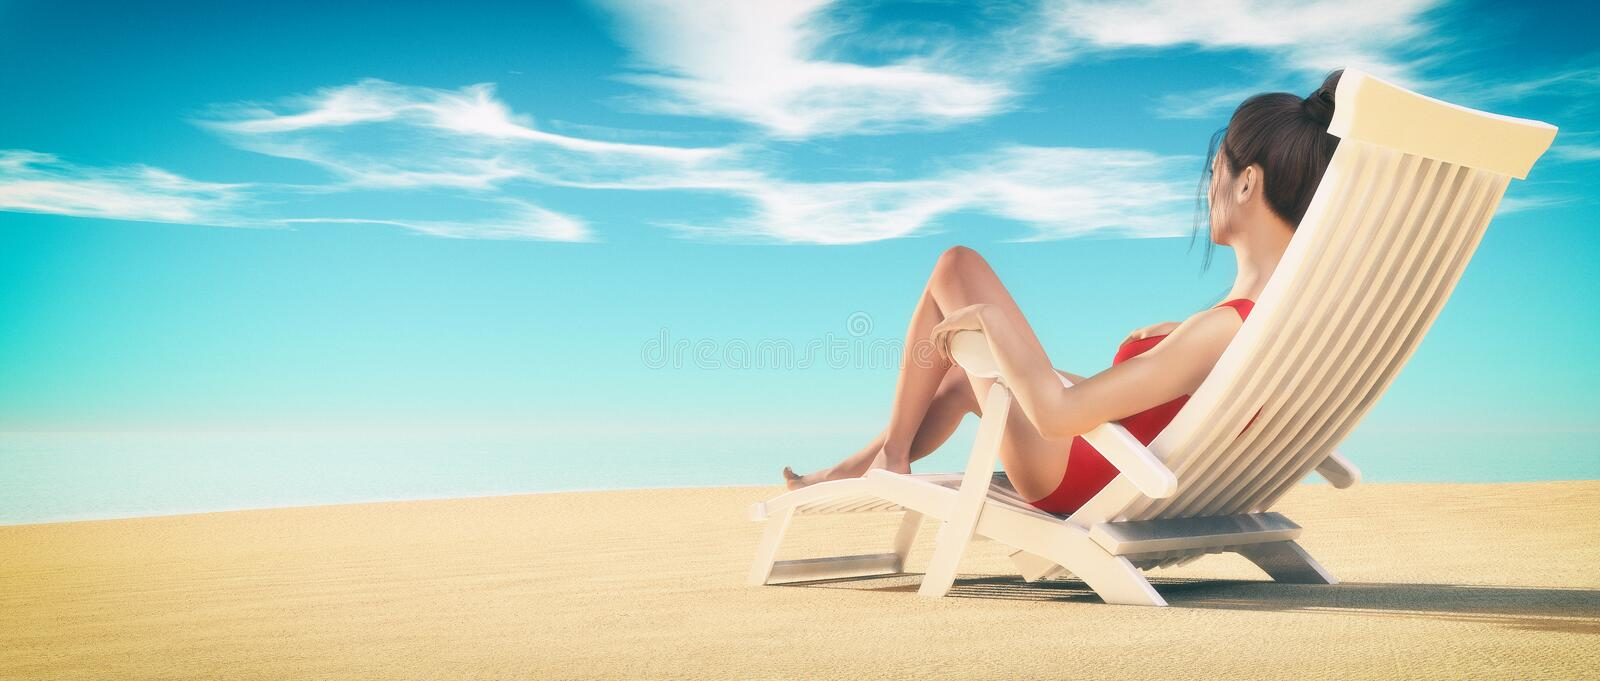 Young woman sunbathing on lounger royalty free stock image